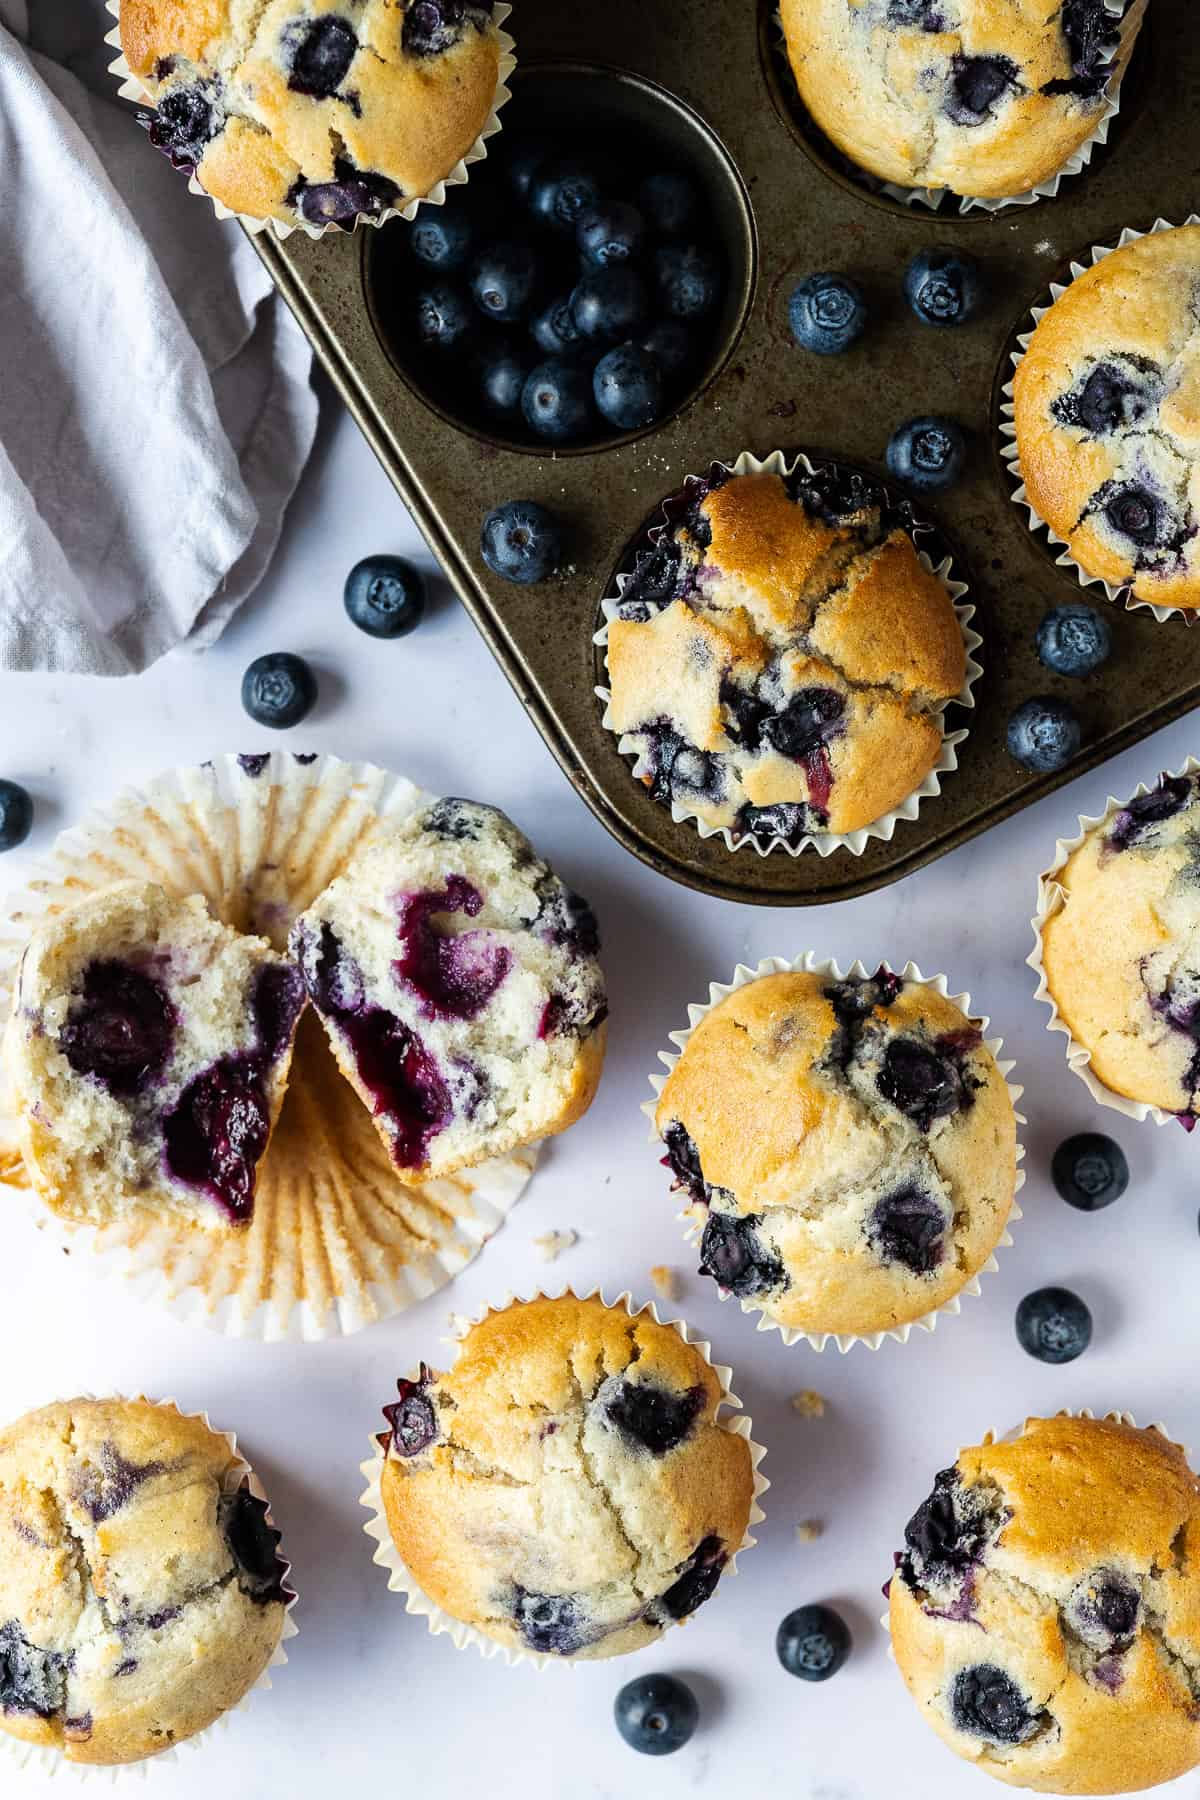 vegan blueberry muffins on a marble surface with fresh blueberries and a muffin tin, one muffin torn in half.